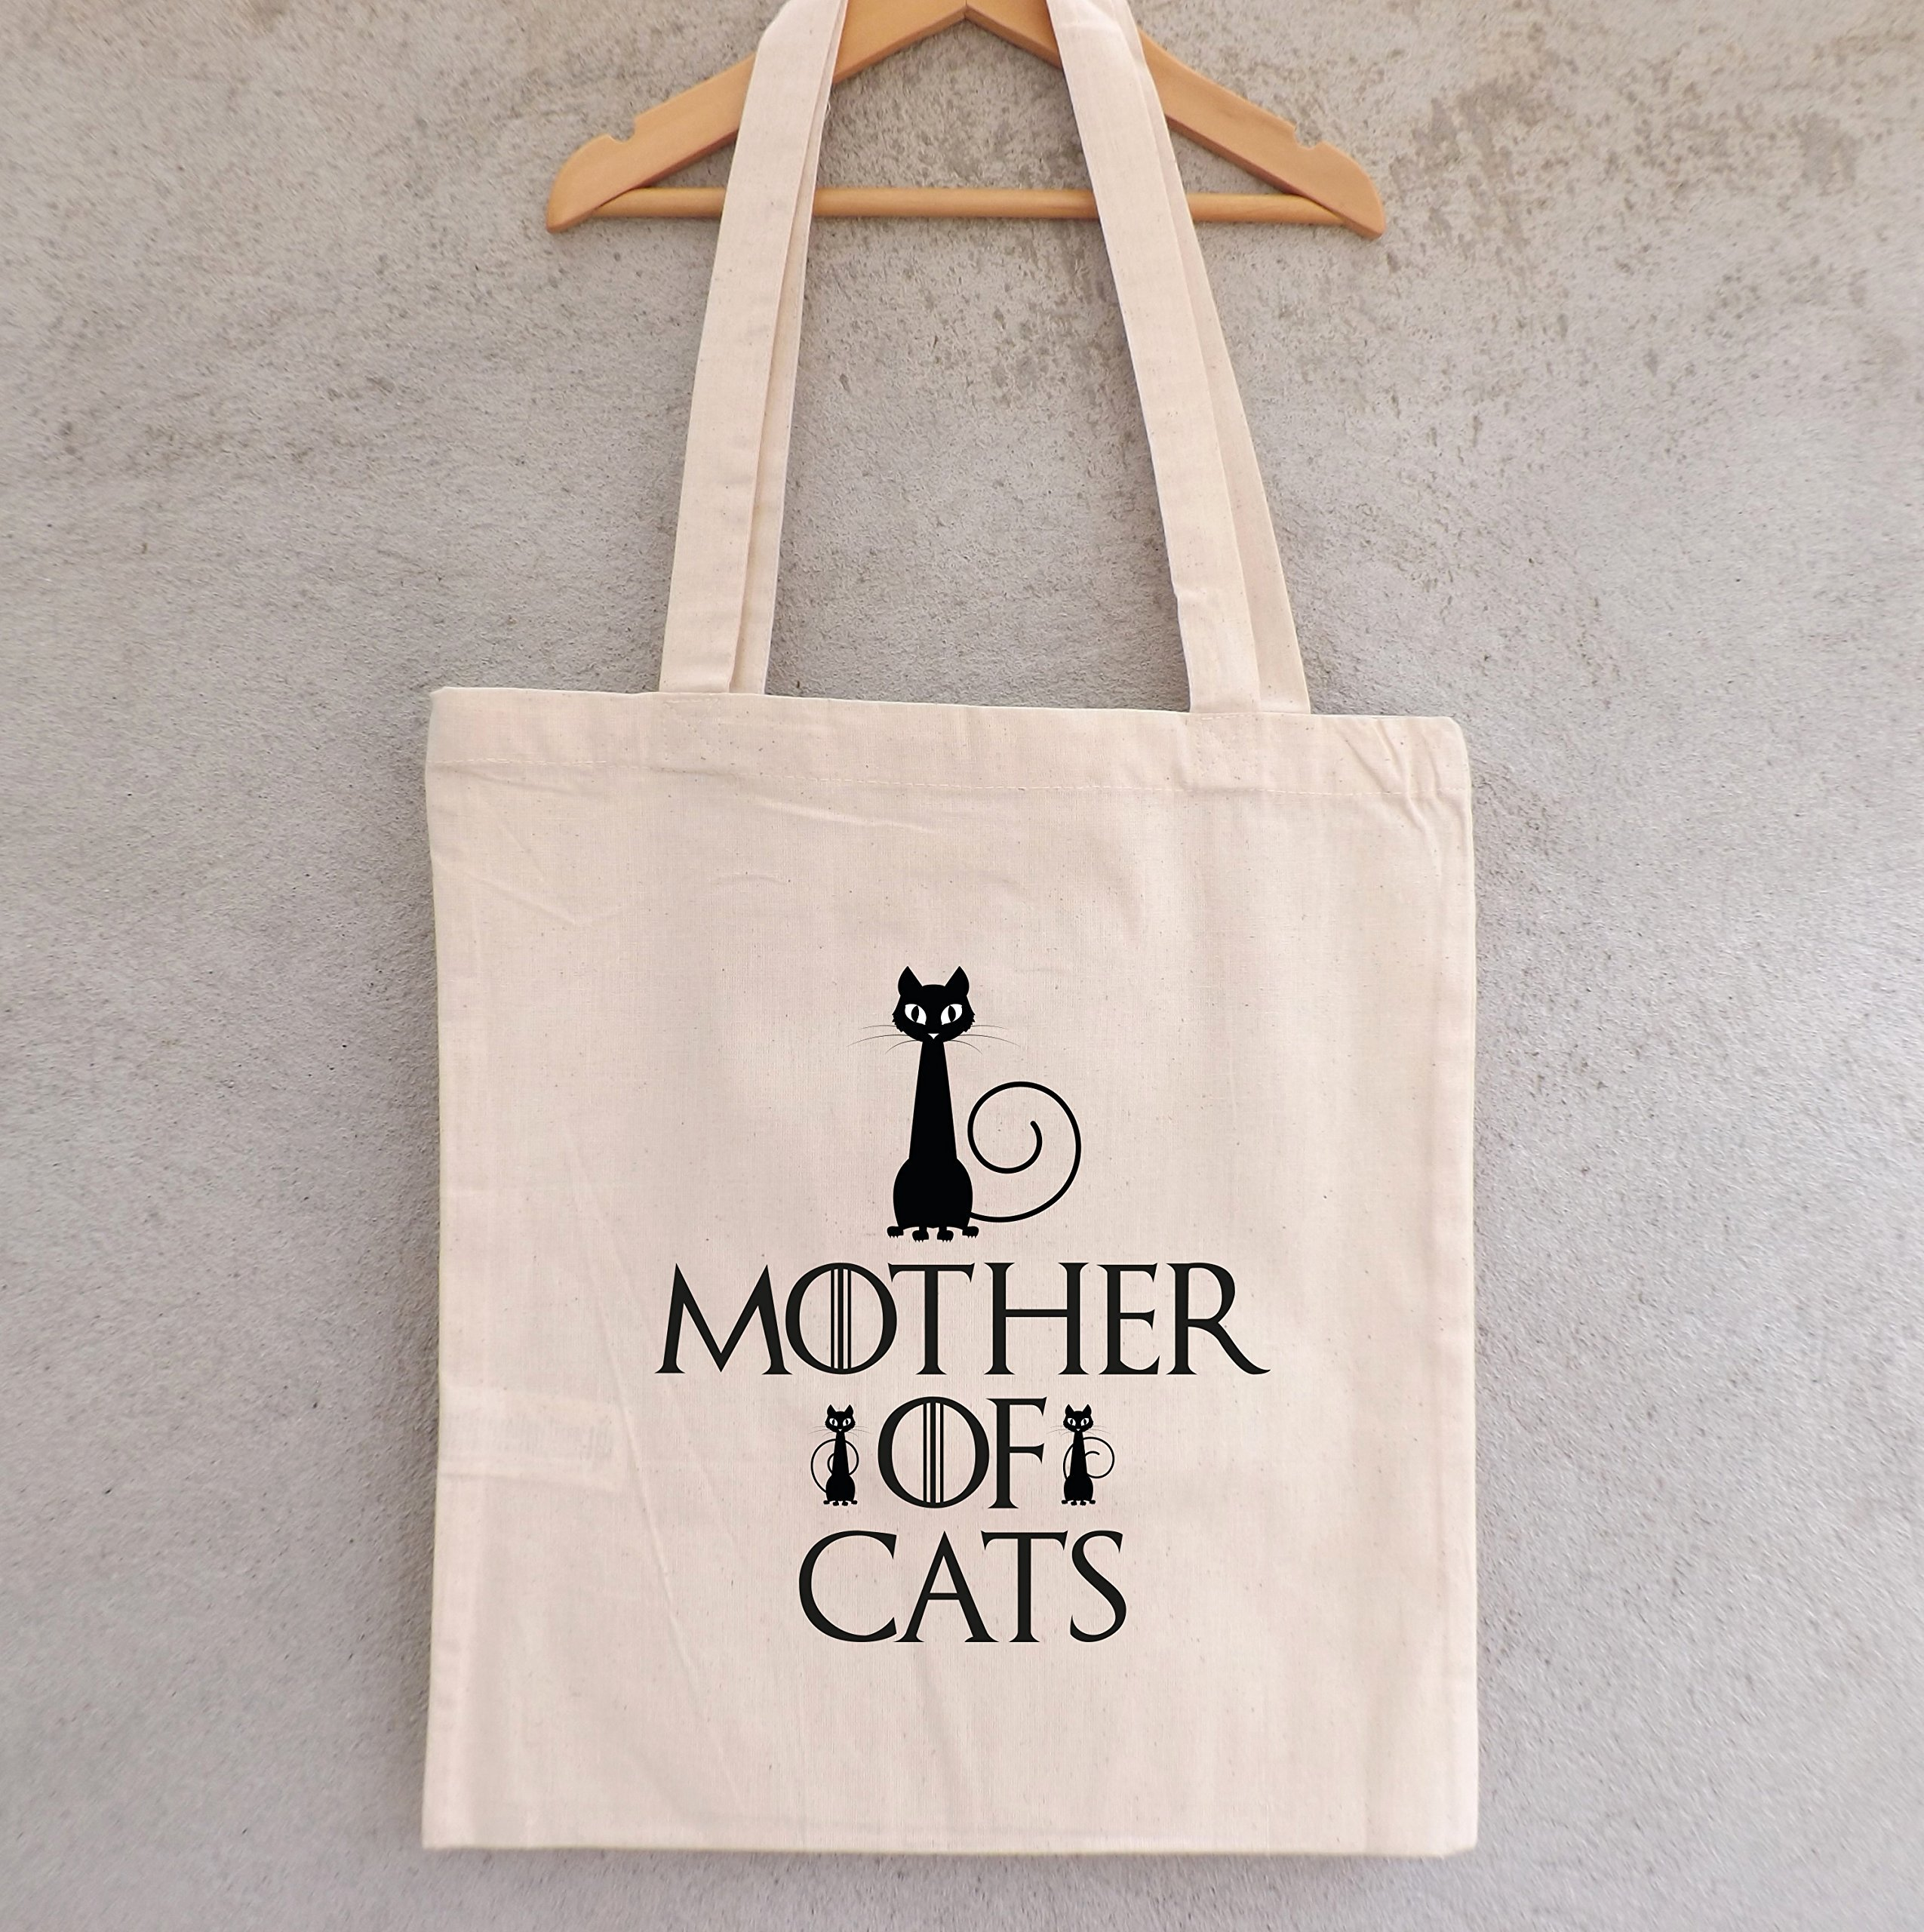 Mother of Dragons tote bag, game of thrones, GOT, mother of dragons, daenerys - handmade-bags